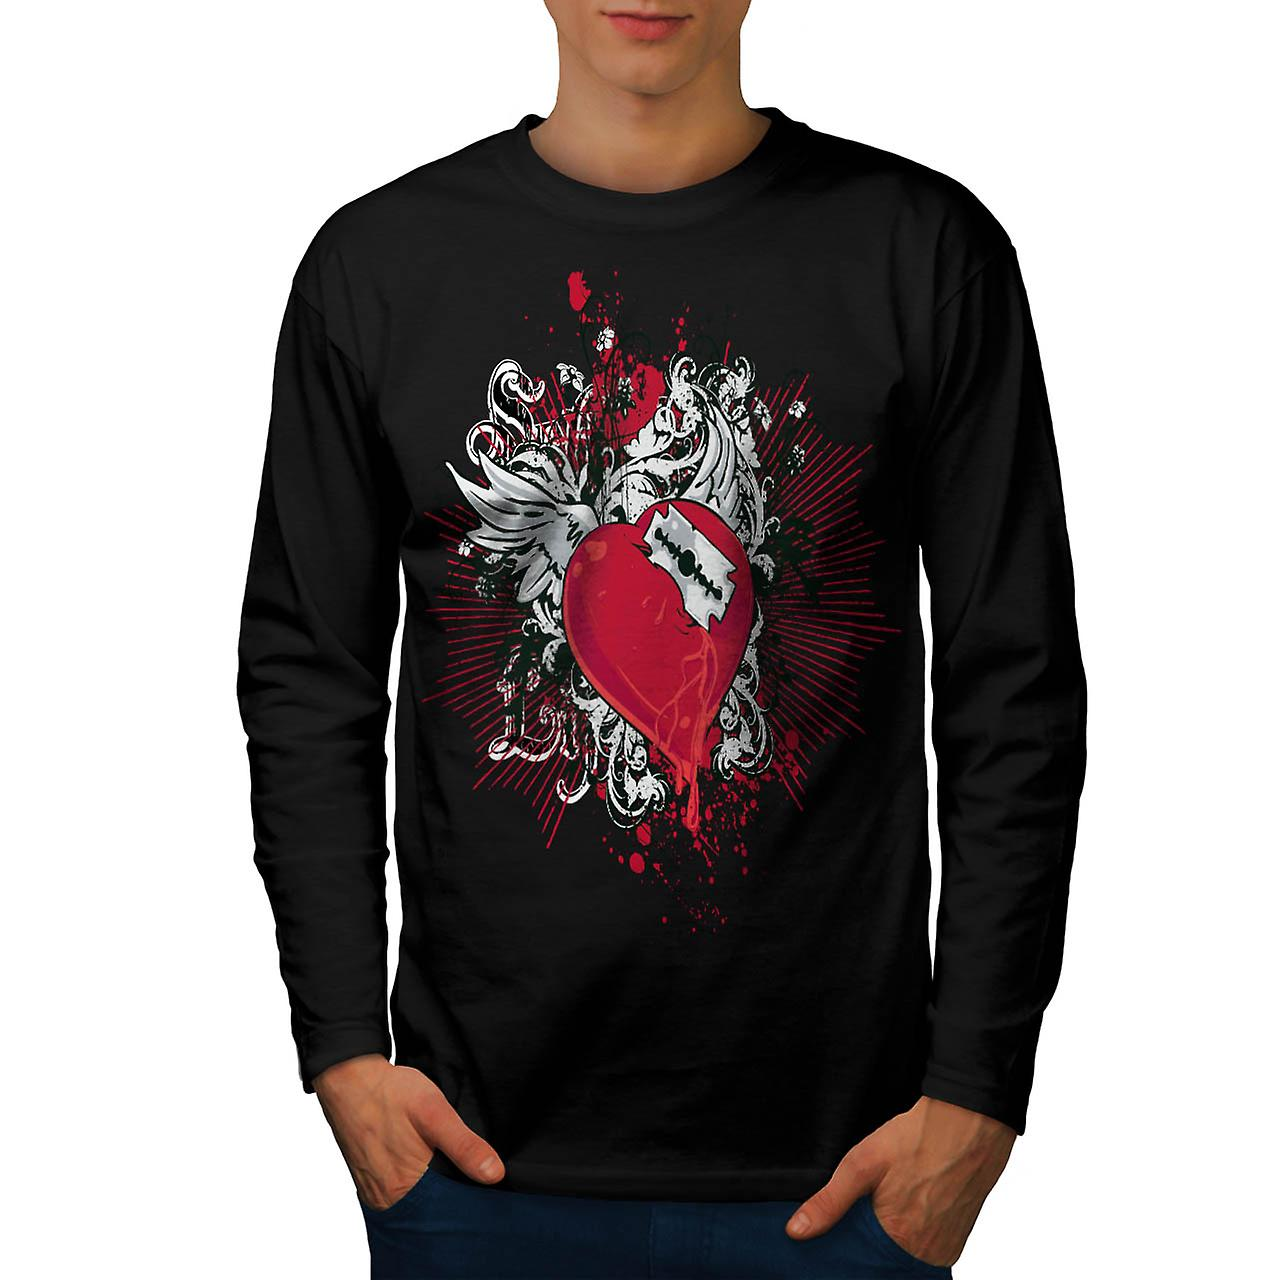 Broken Heart Cool Fashion Men Black Long Sleeve T-shirt | Wellcoda